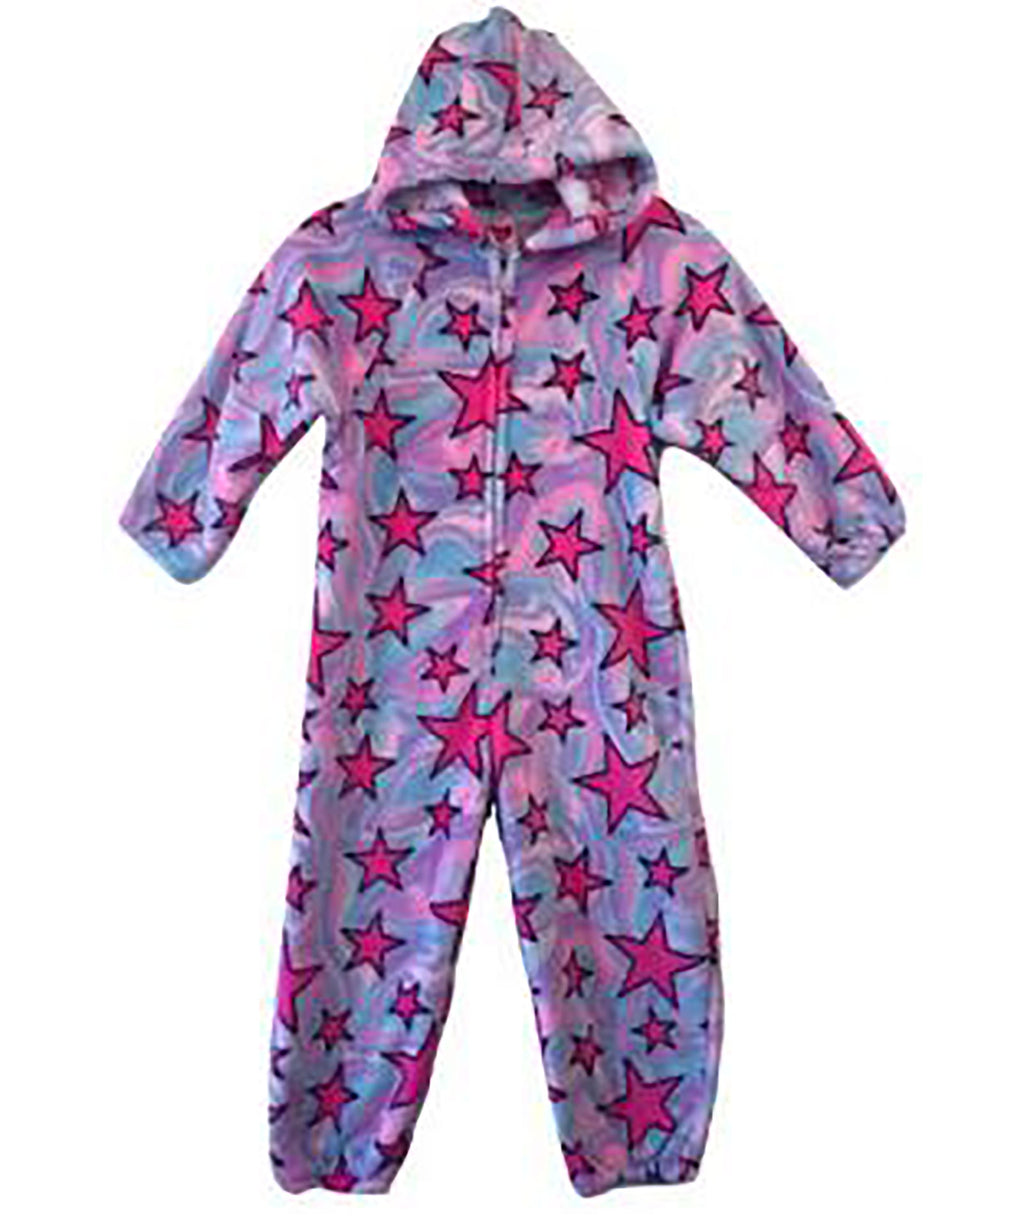 Made with Love and Kisses Girls Swirl Star Plush Jumpsuit - Frankie's on the Park